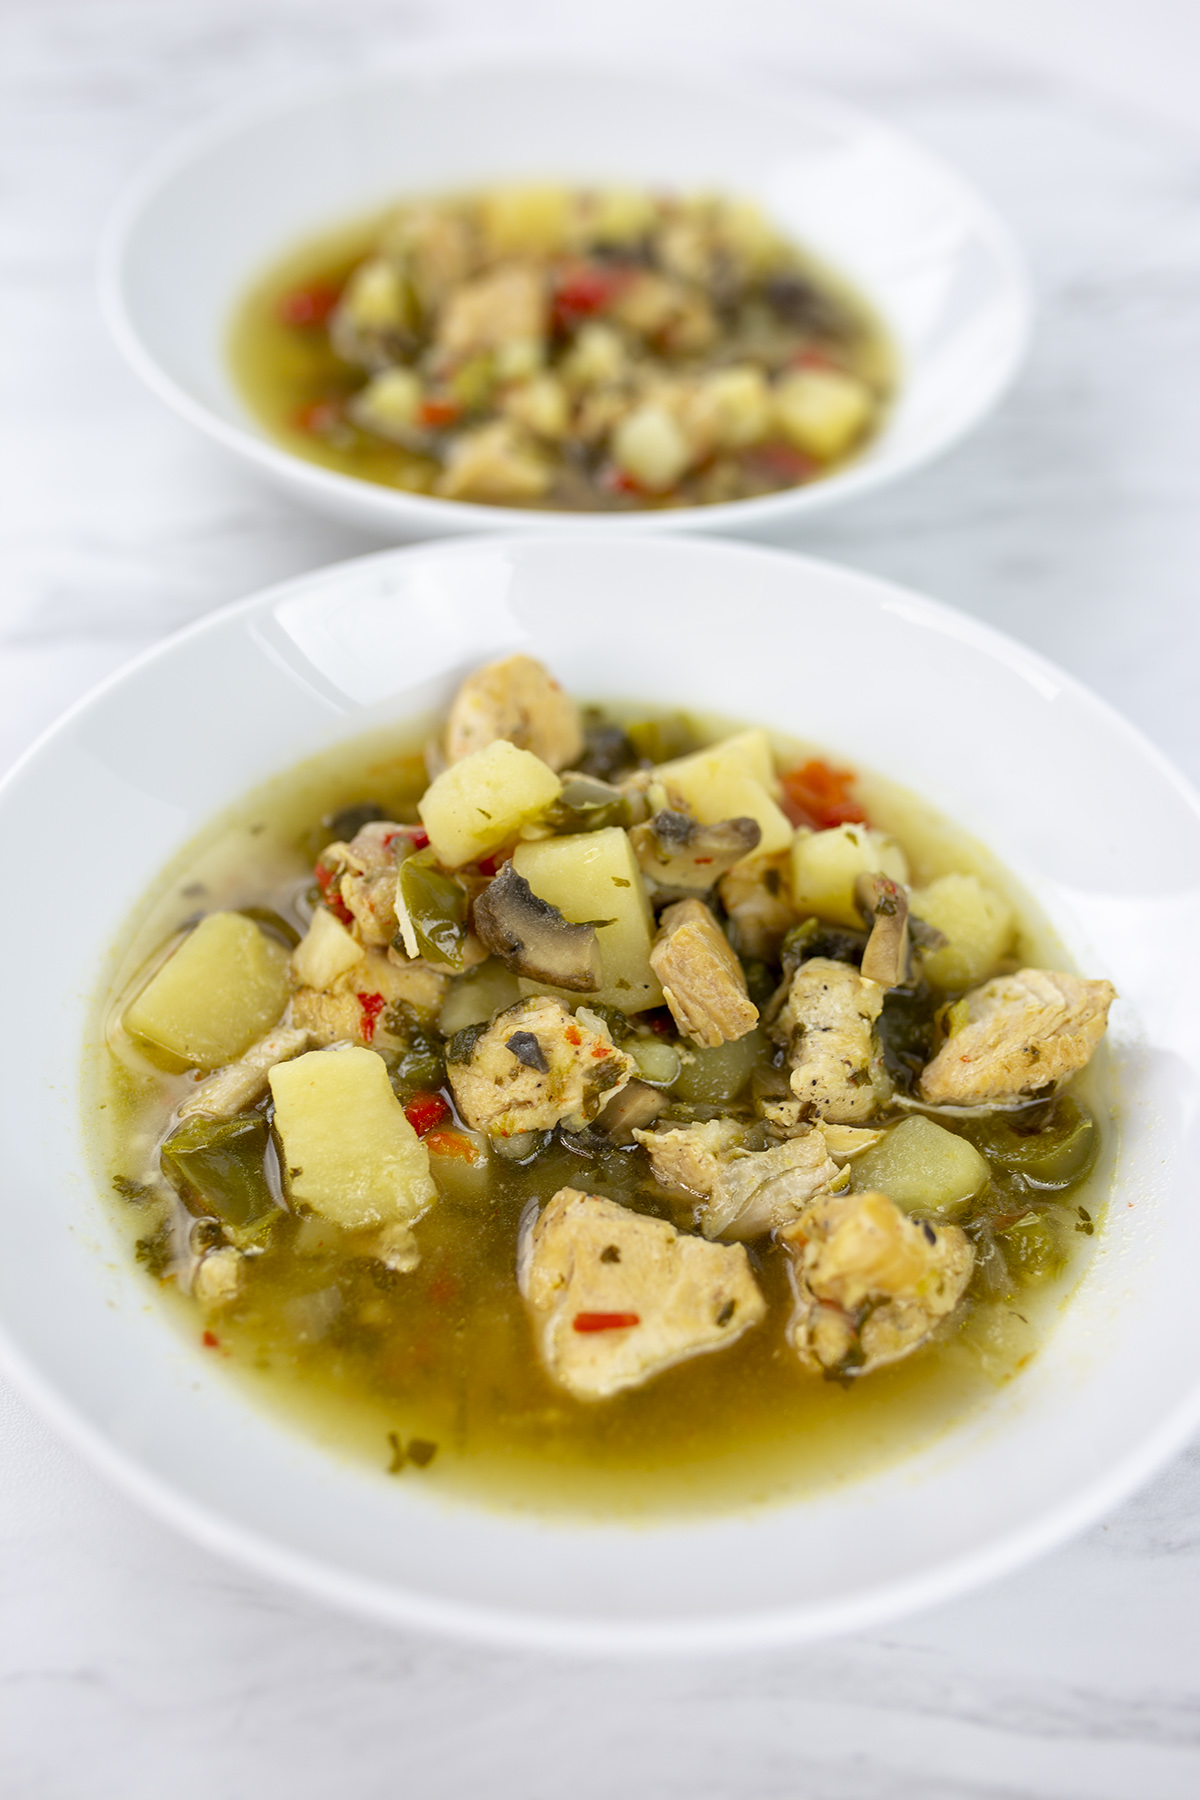 chicken soup with potatoes, mushrooms and broth on white bowls